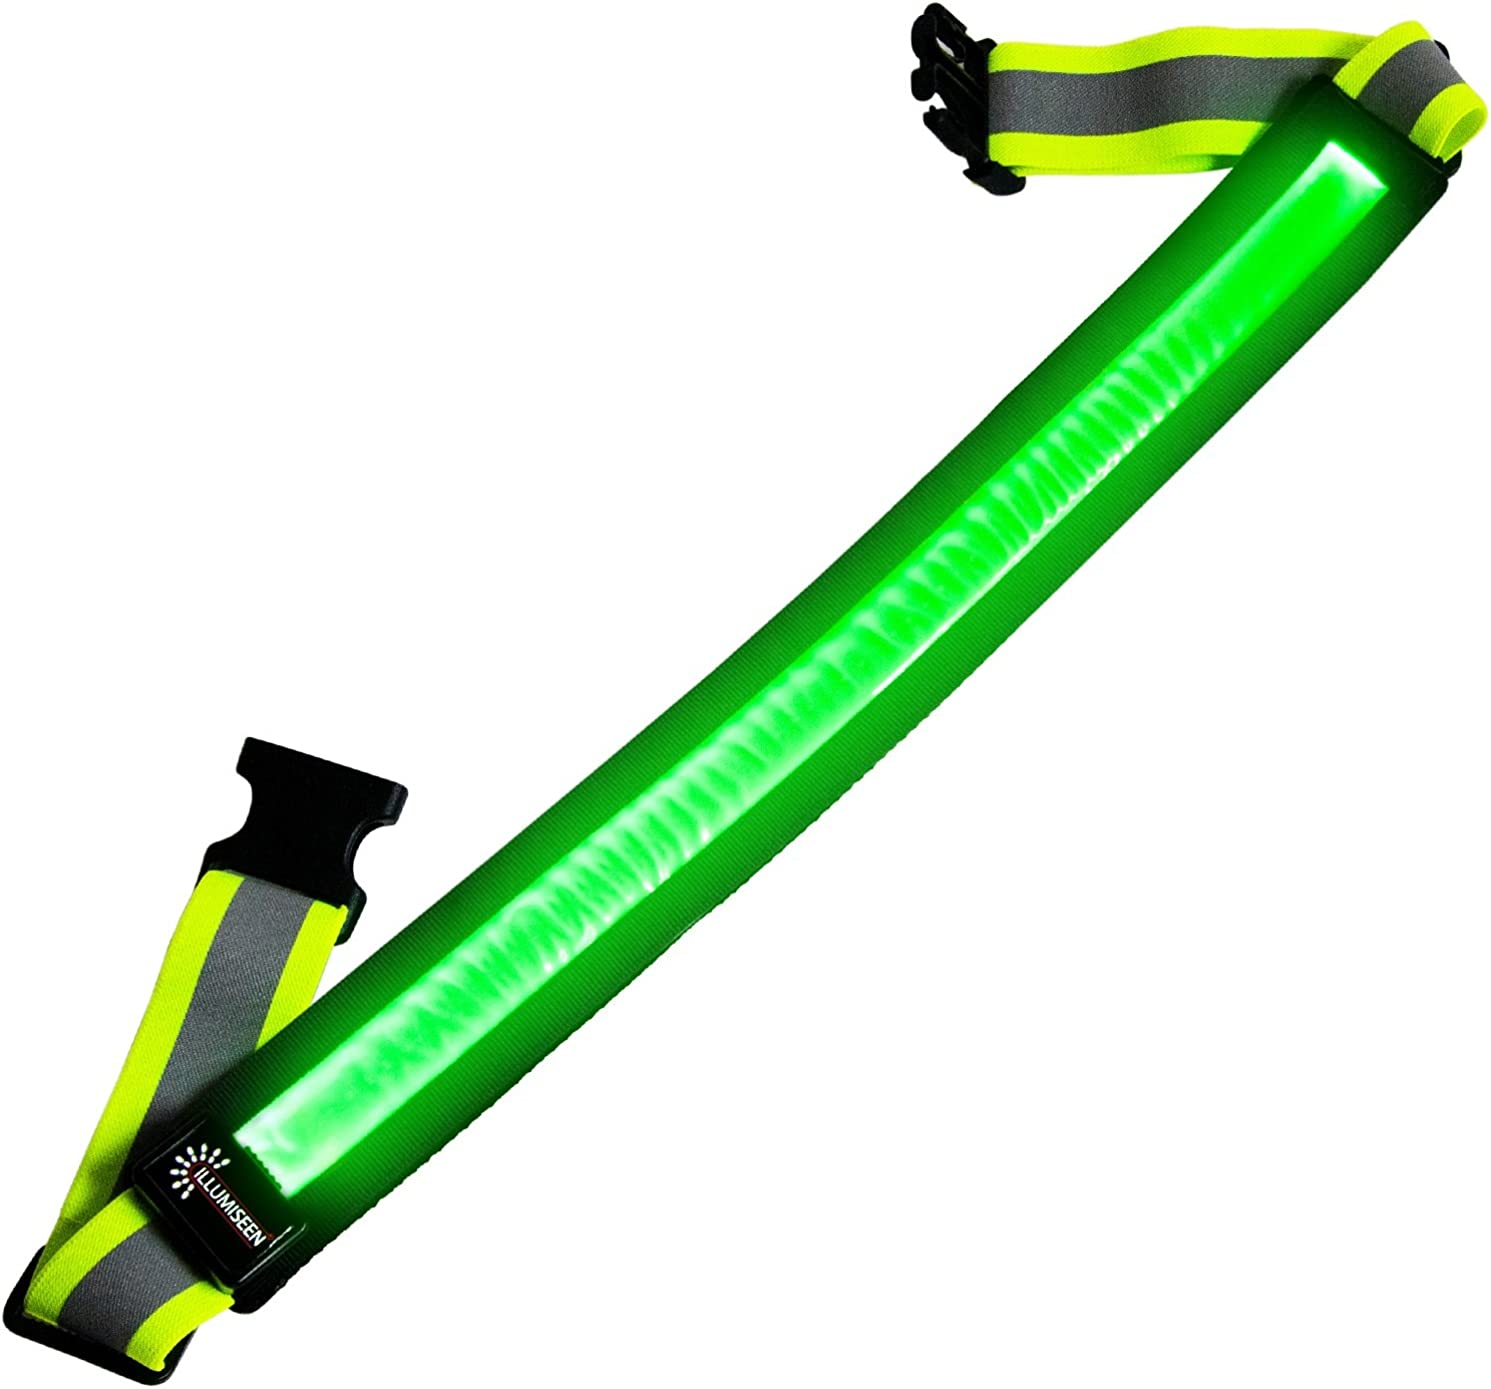 LED Reflective Belt - USB High Classic Rechargeable Gear fo Daily bargain sale Visibility